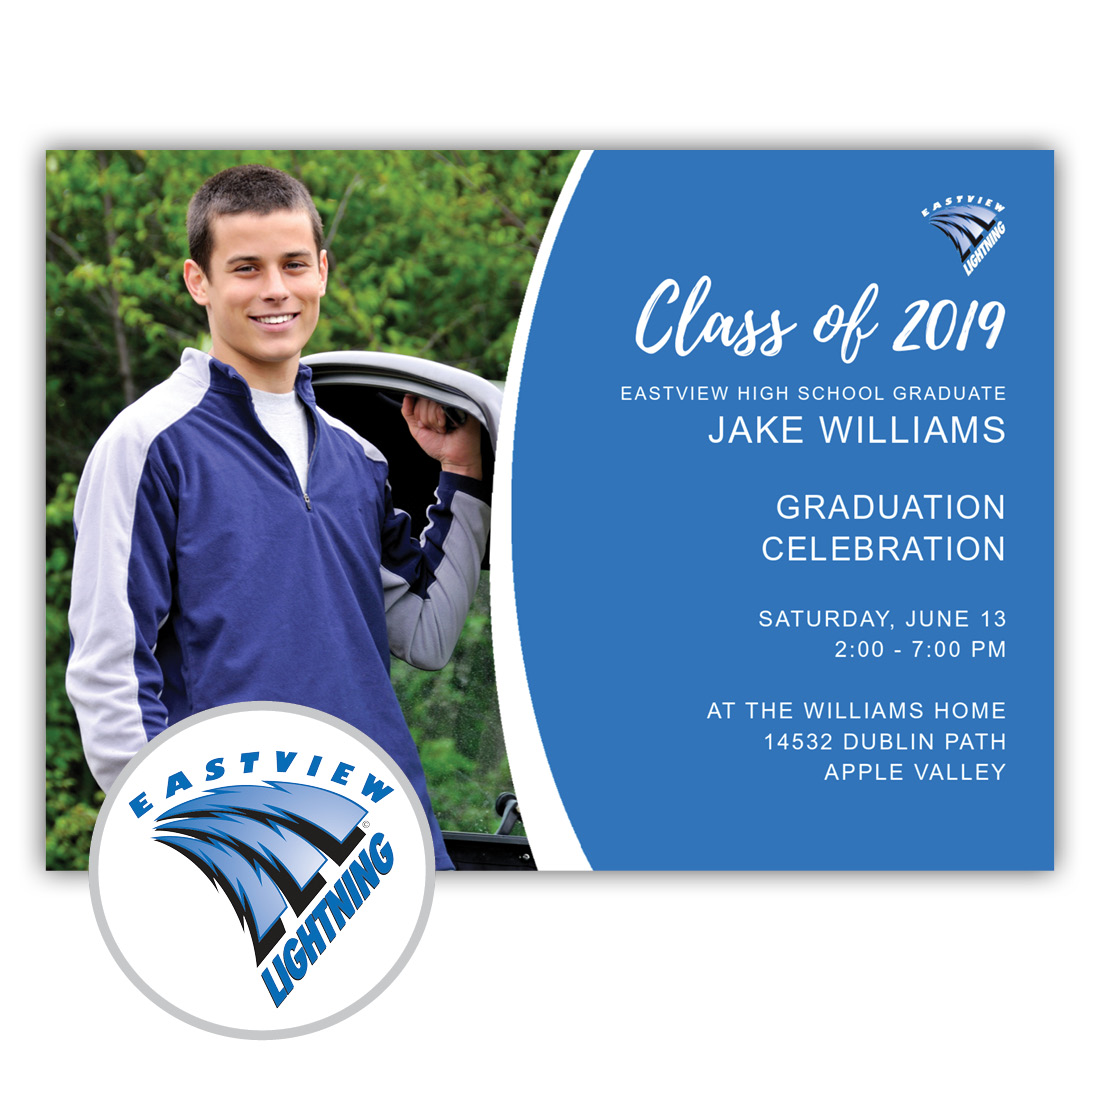 School Spirit, Eastview High School - Focus in Pix Graduation Party Invitation or Announcement